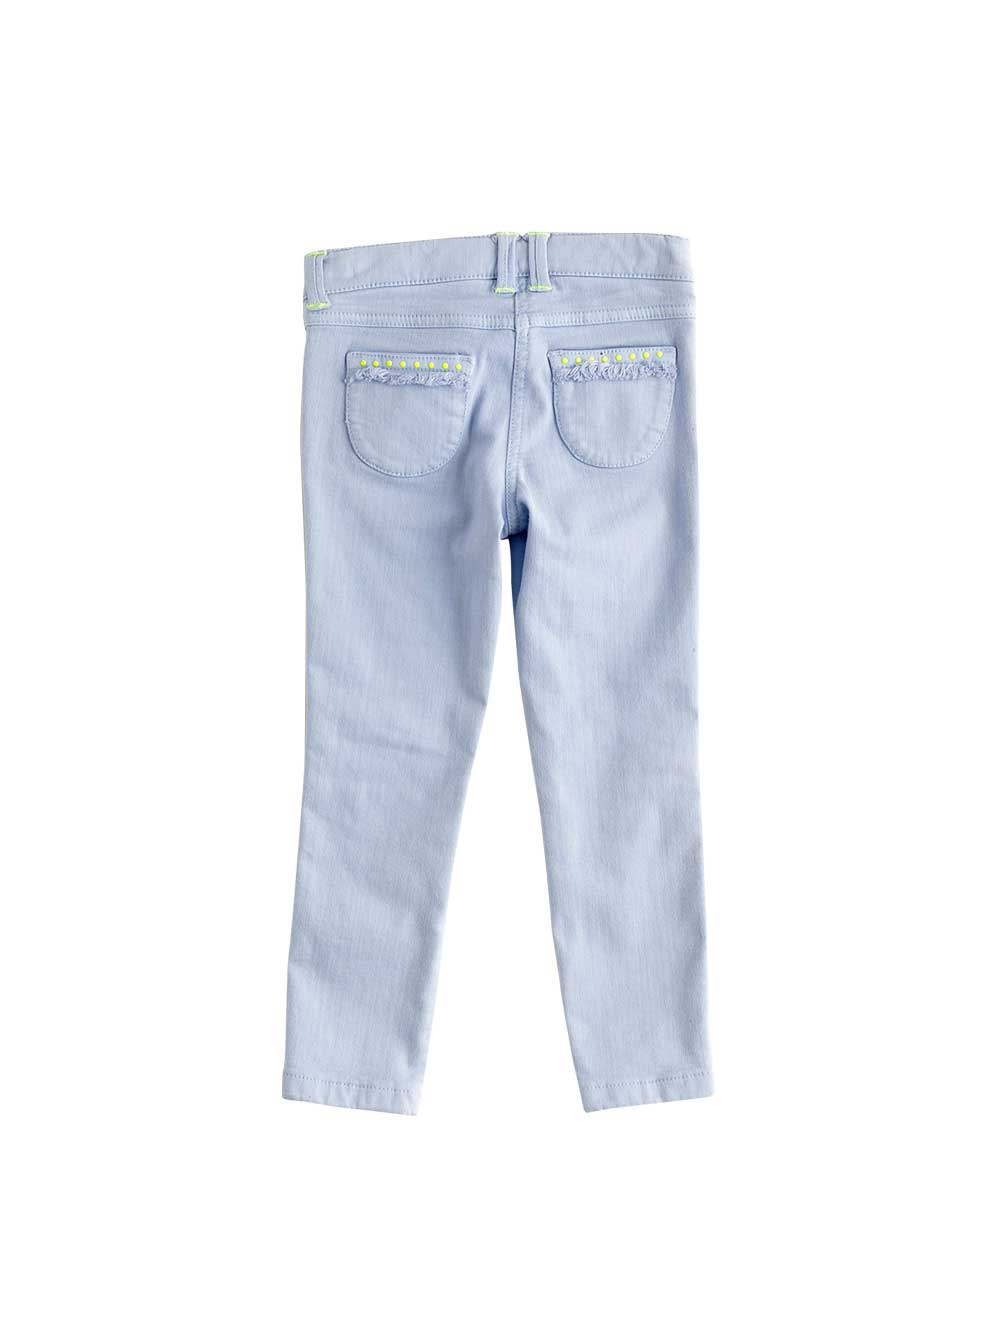 Stone Blue Jeans